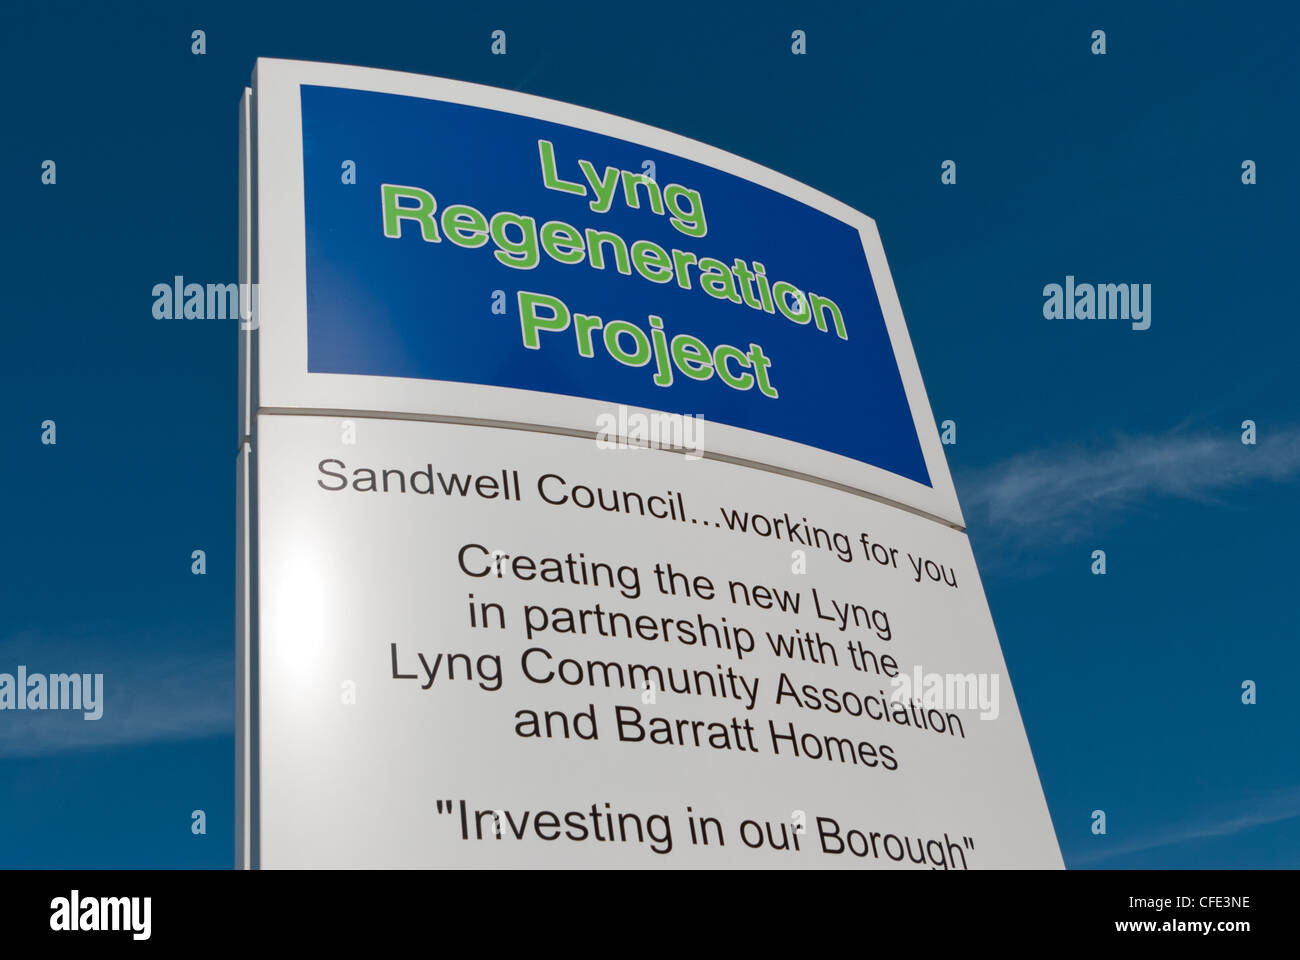 Signpost for Lyng Regeneration Project in West Bromwich, Sandwell and Dudley, West Midlands, UK - Stock Image